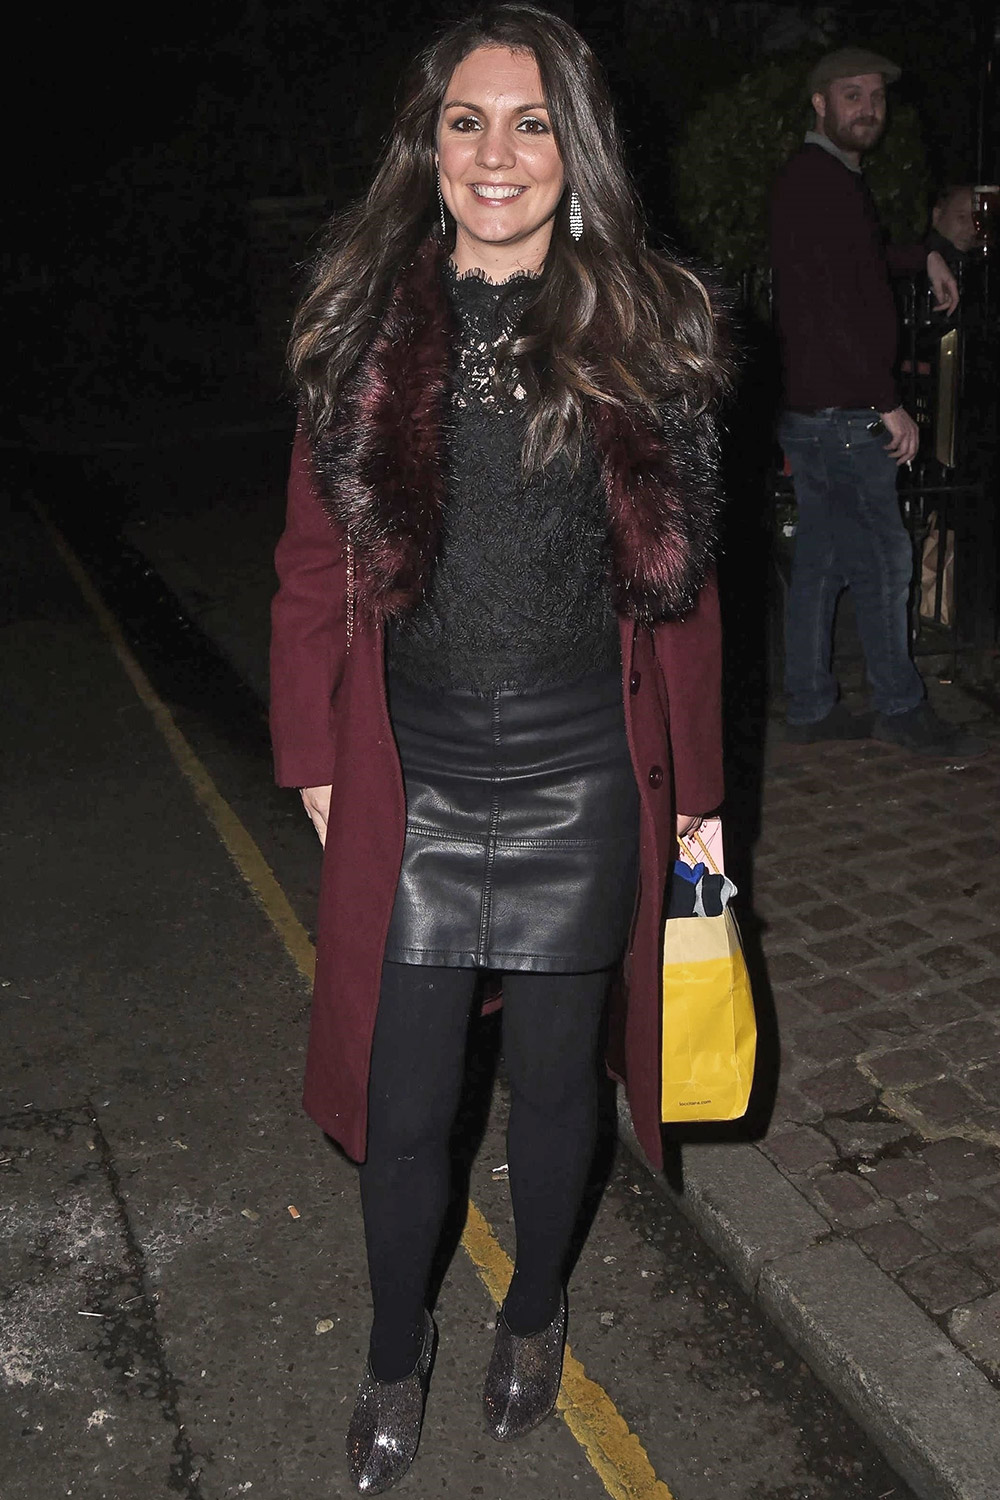 Laura Tobin attends Piers Morgan's Christmas Party